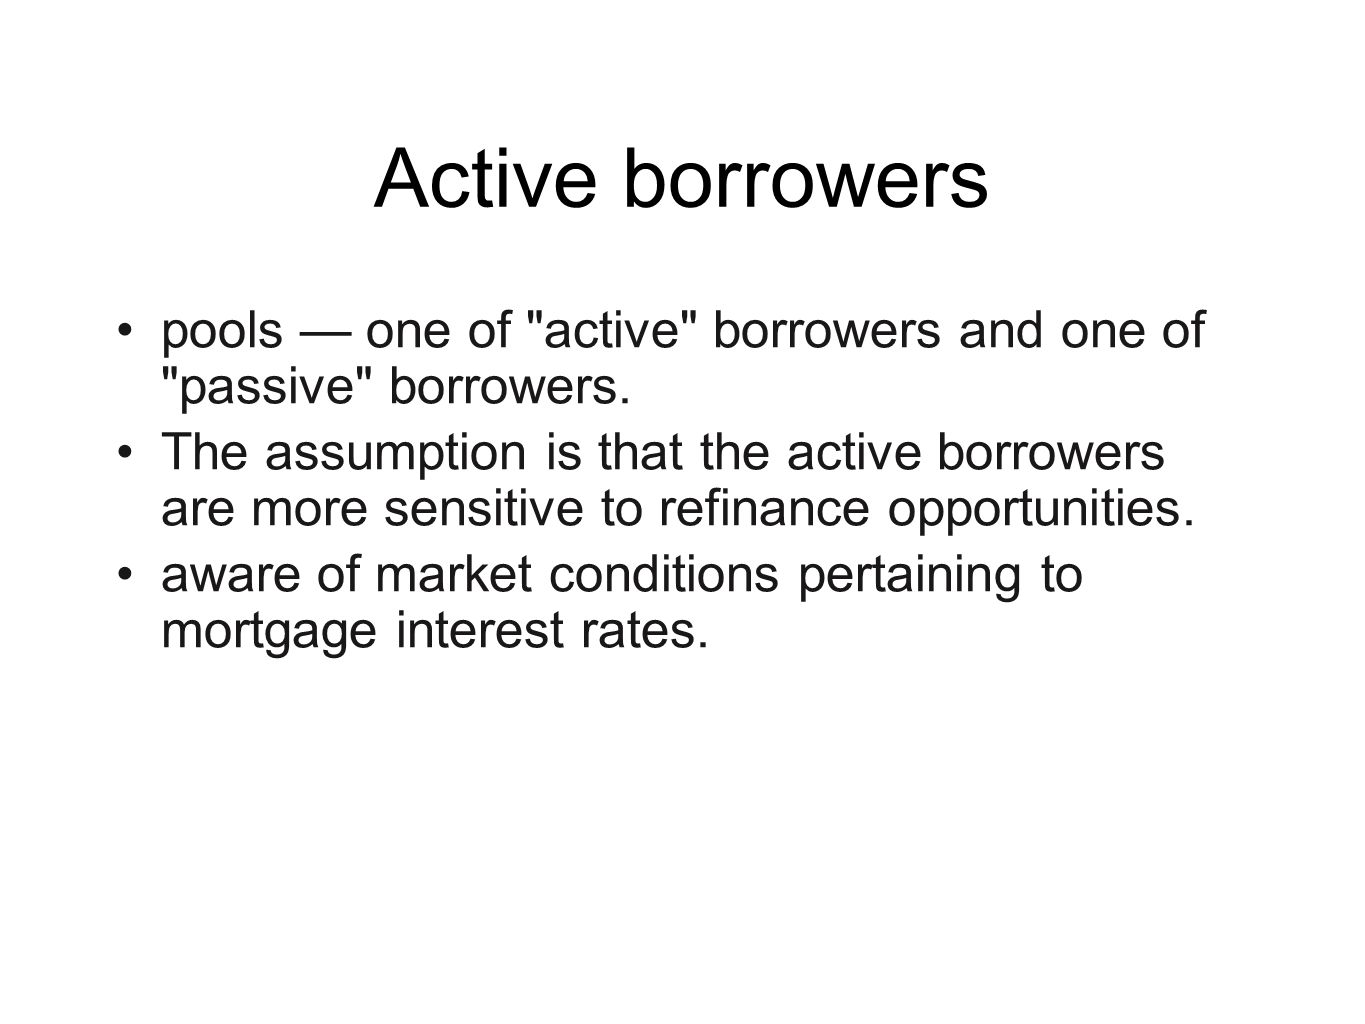 Active borrowers pools — one of active borrowers and one of passive borrowers.